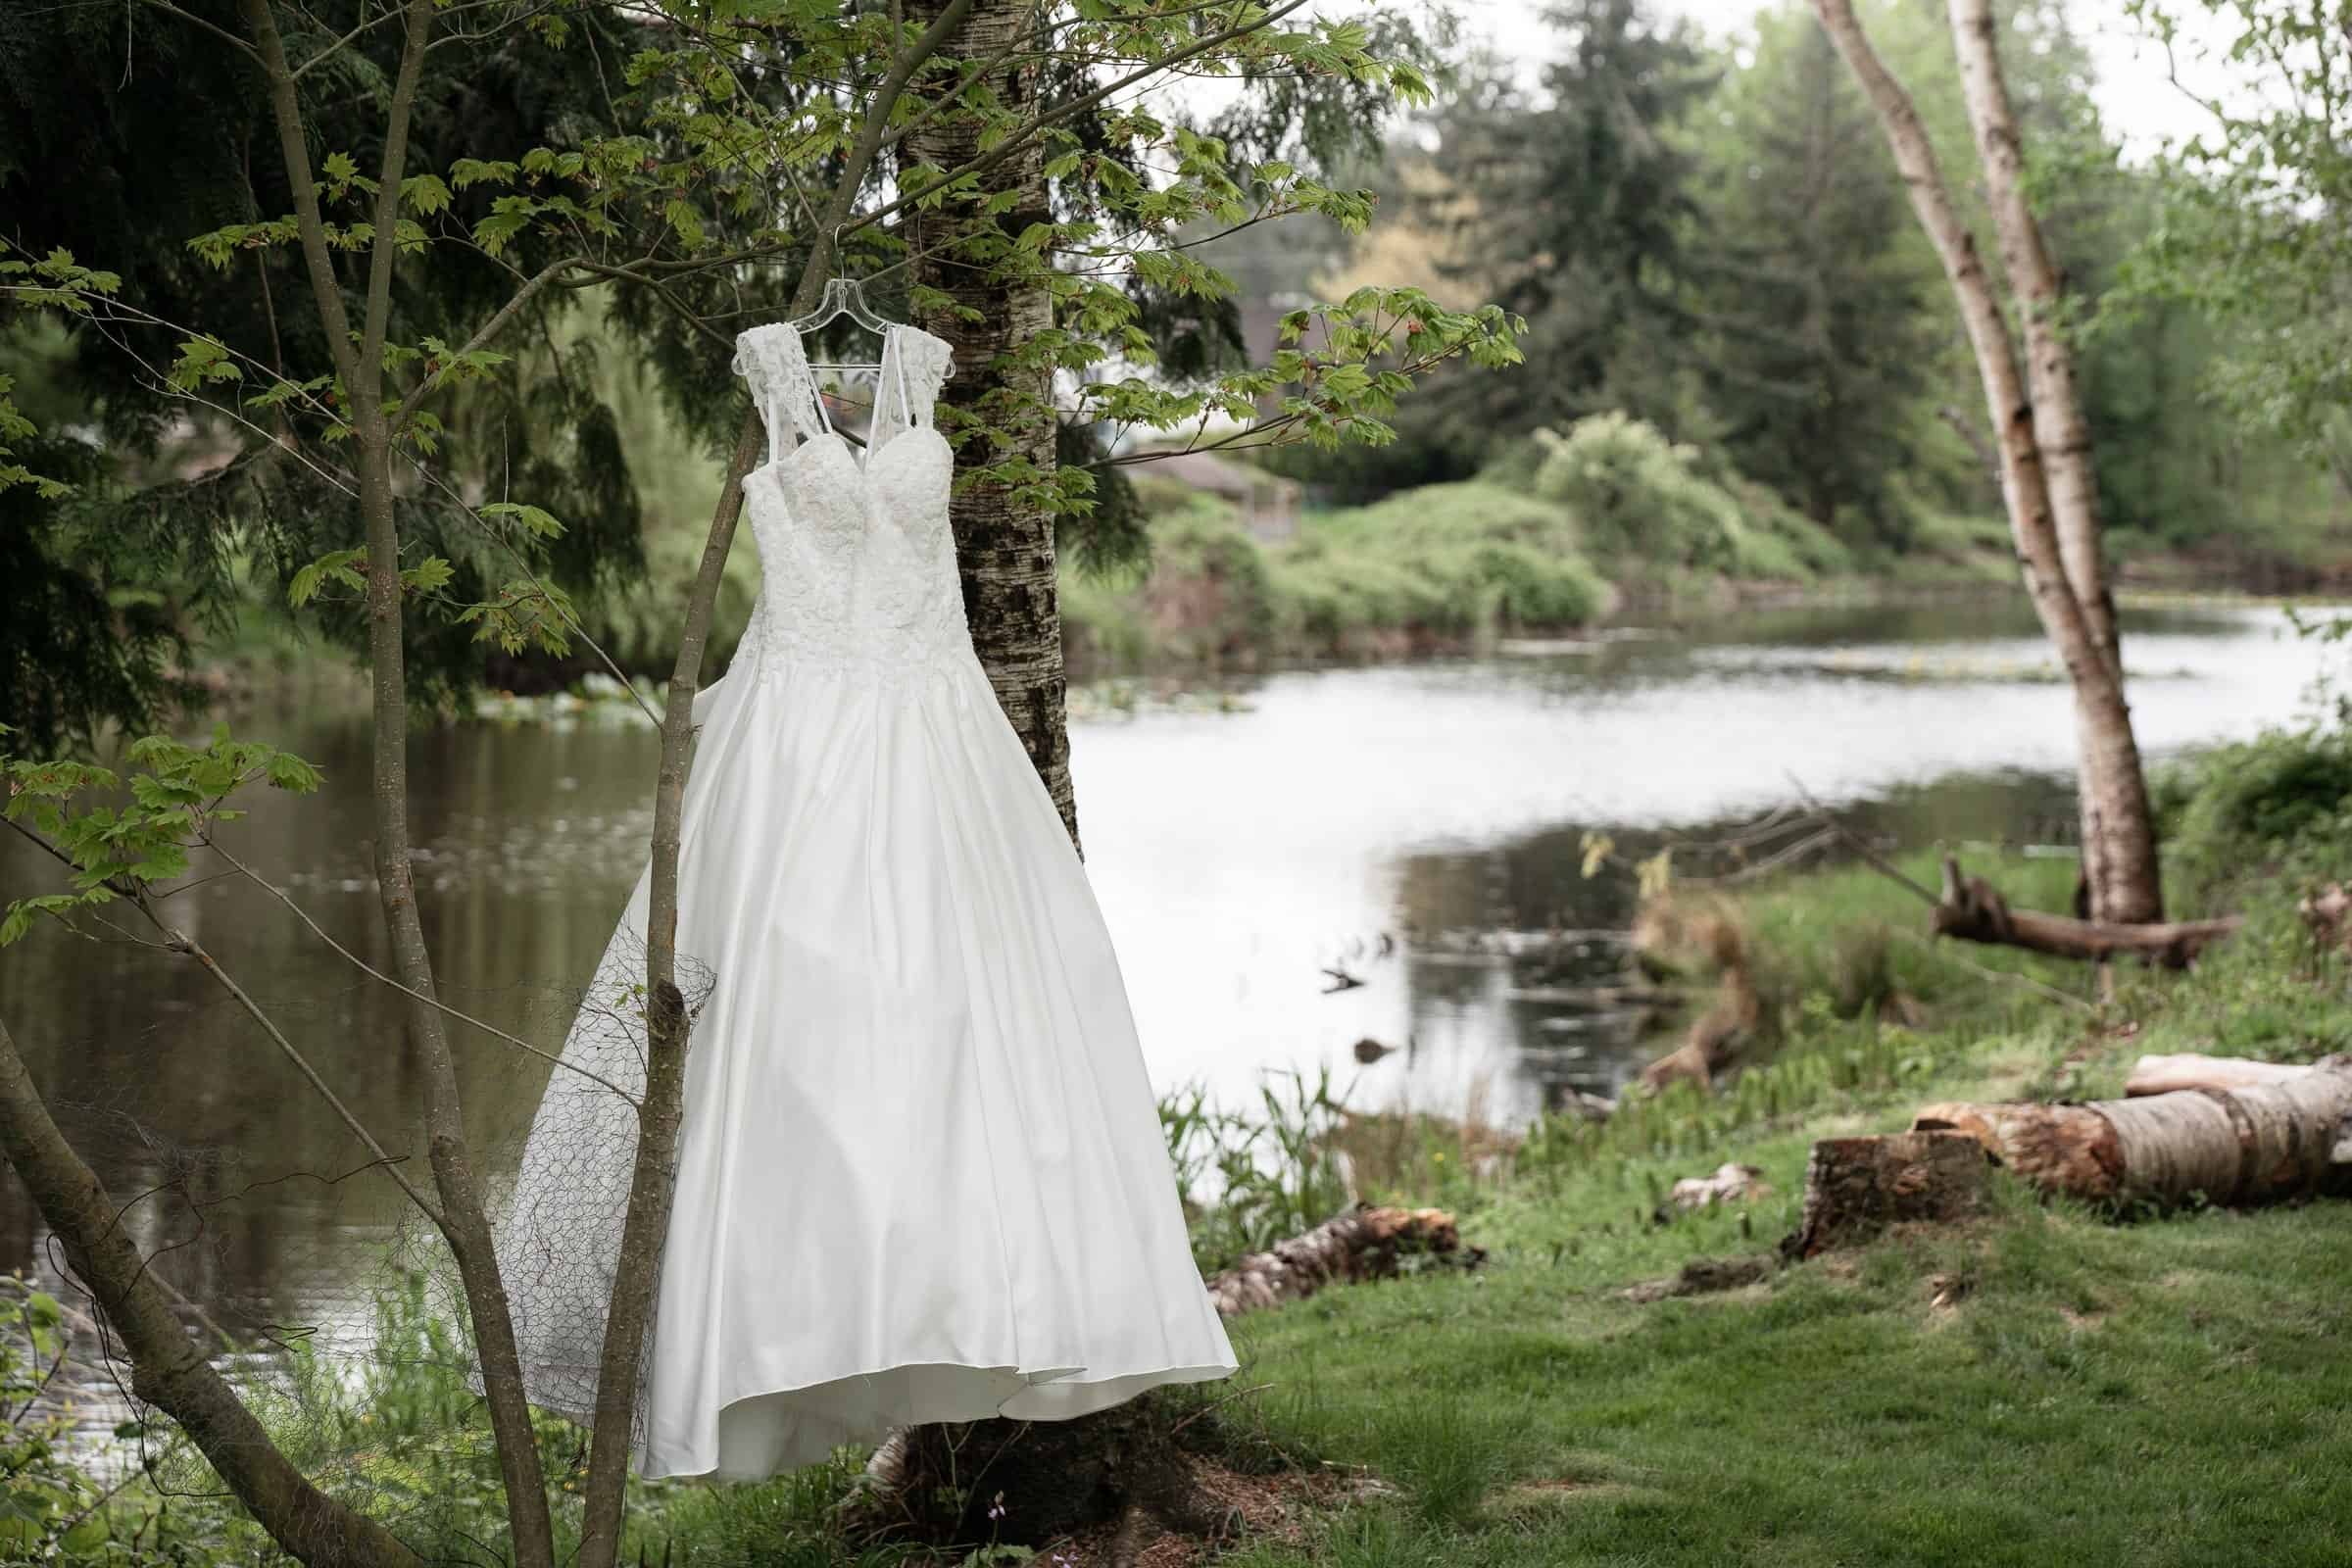 wedding dress hanging in tree by river